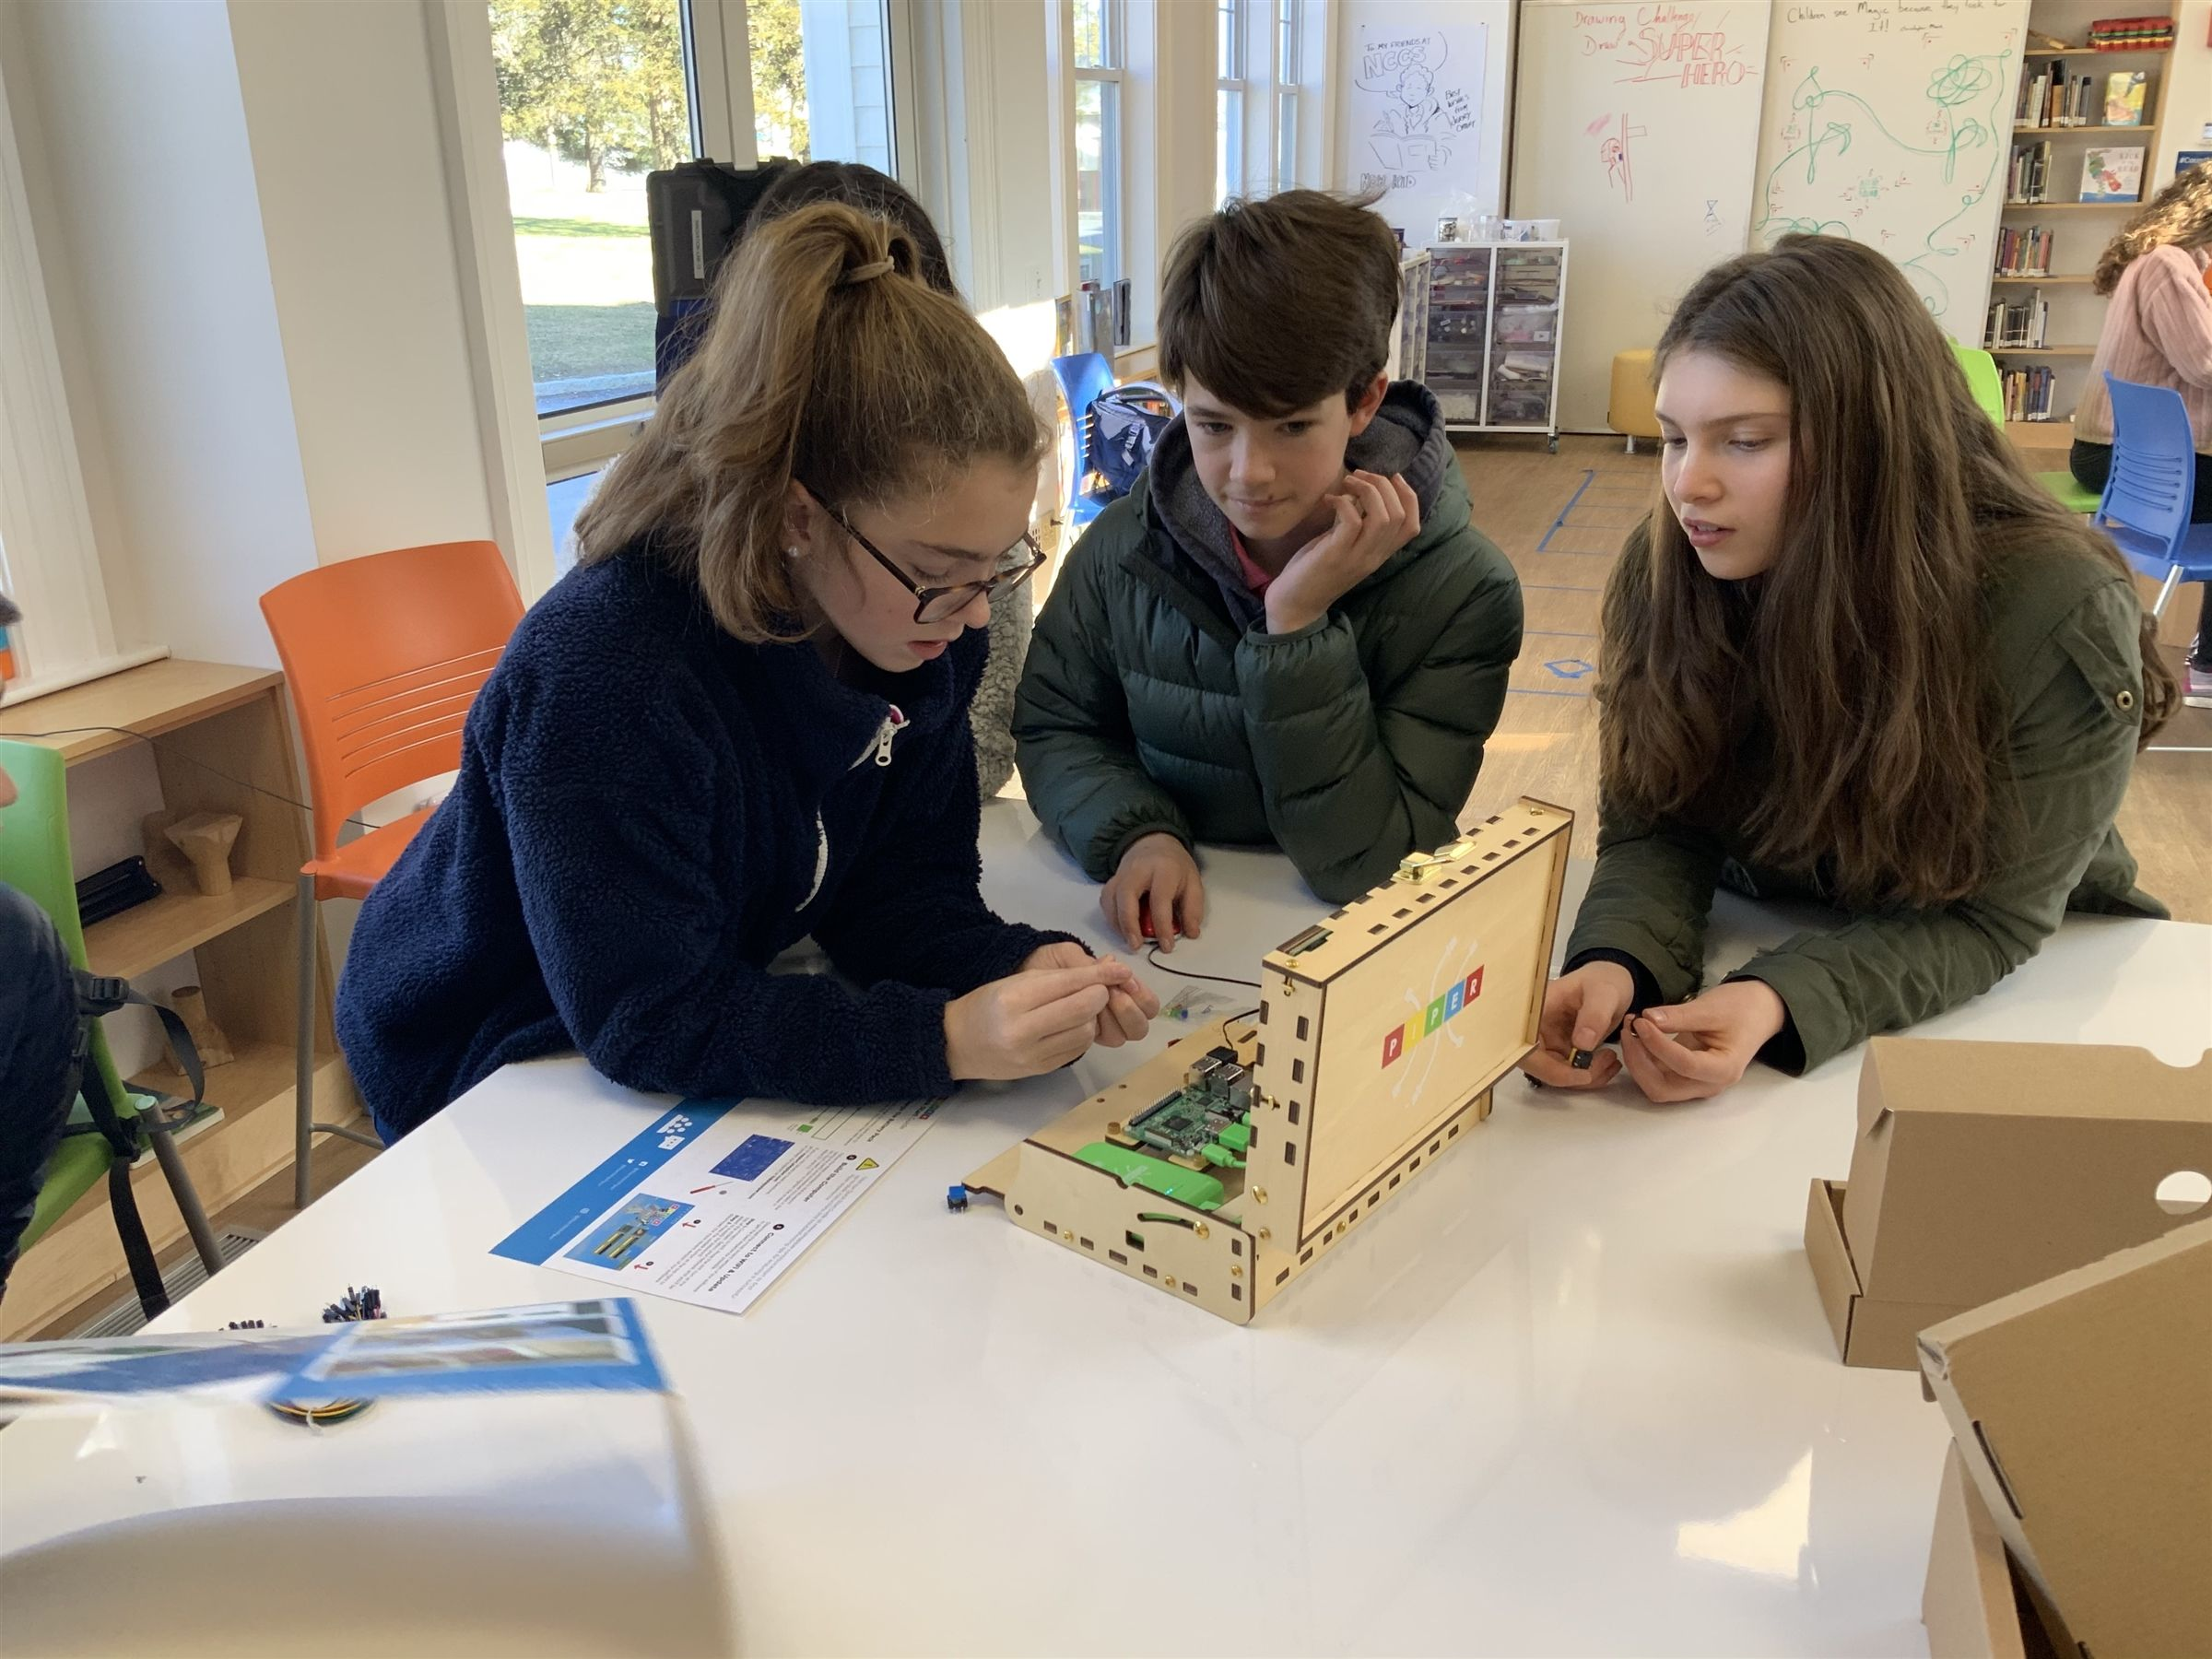 Creativity, collaboration and risk-taking are at the heart of our program. Students are taught to build, test and rebuild. It's about precision and flexibility, design and function, and breaking down complex challenges into solvable parts.